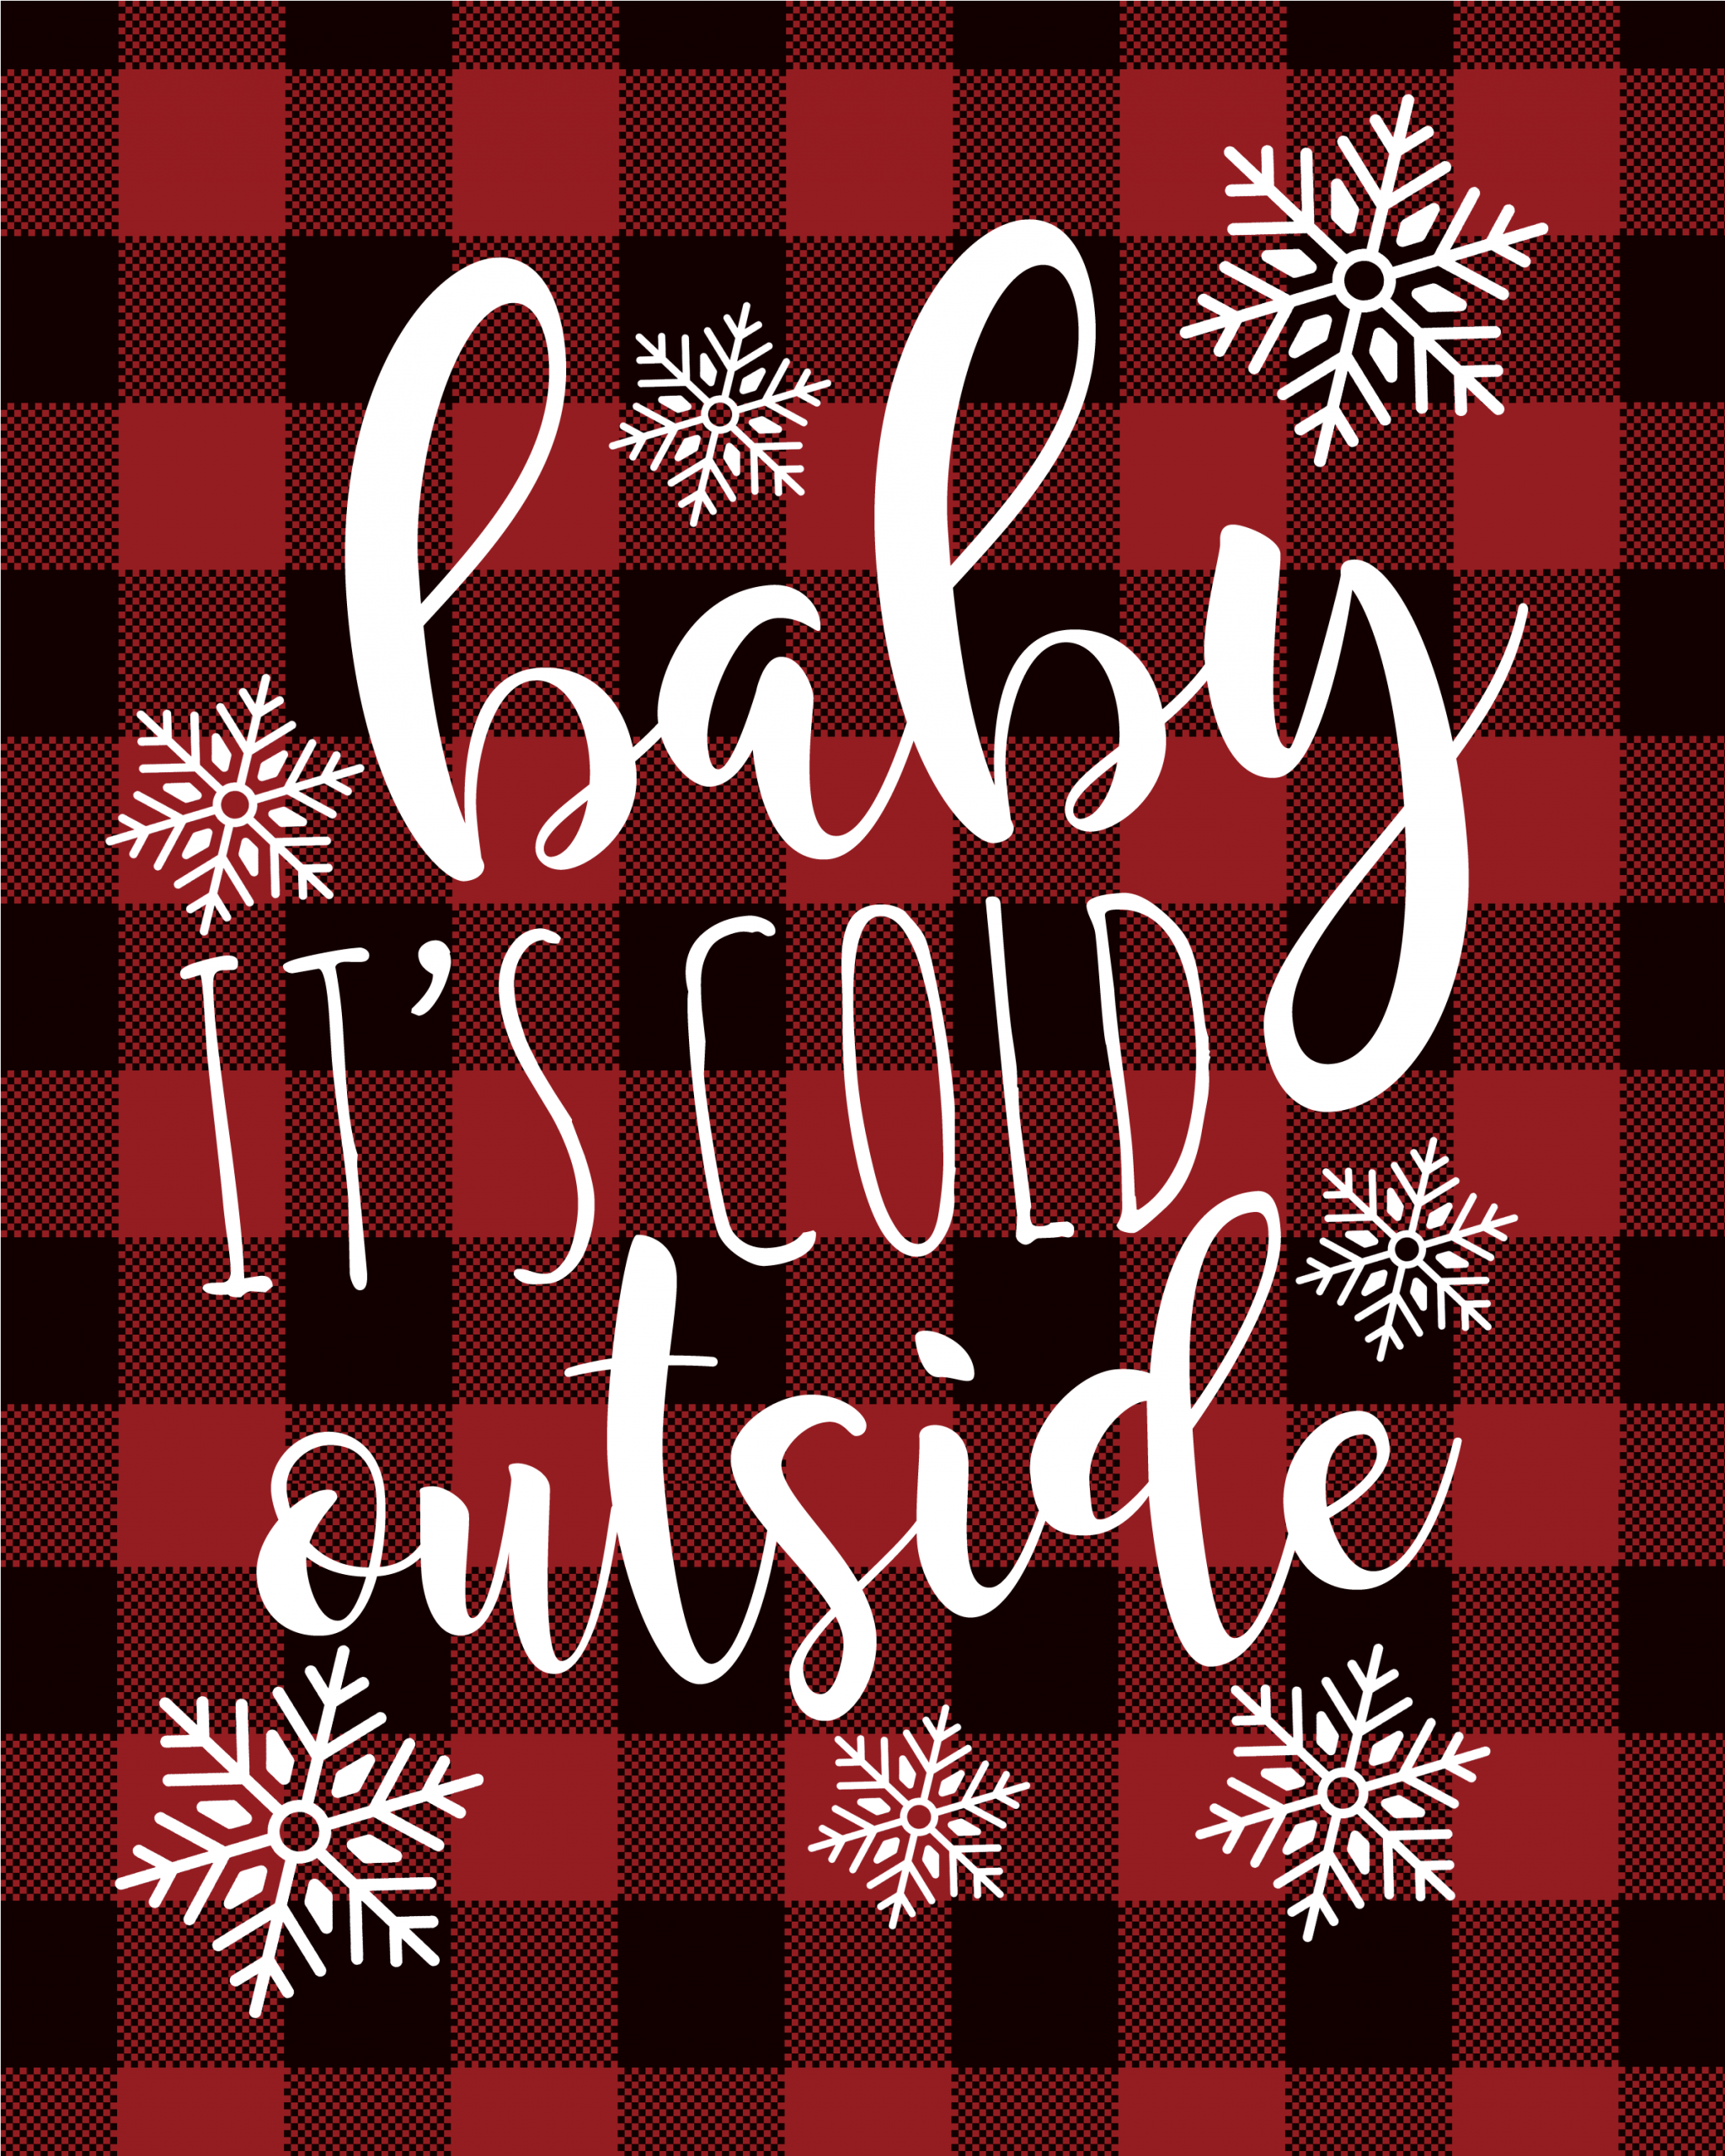 Buffalo check Christmas printable with Baby It's Cold Outside song lyrics.